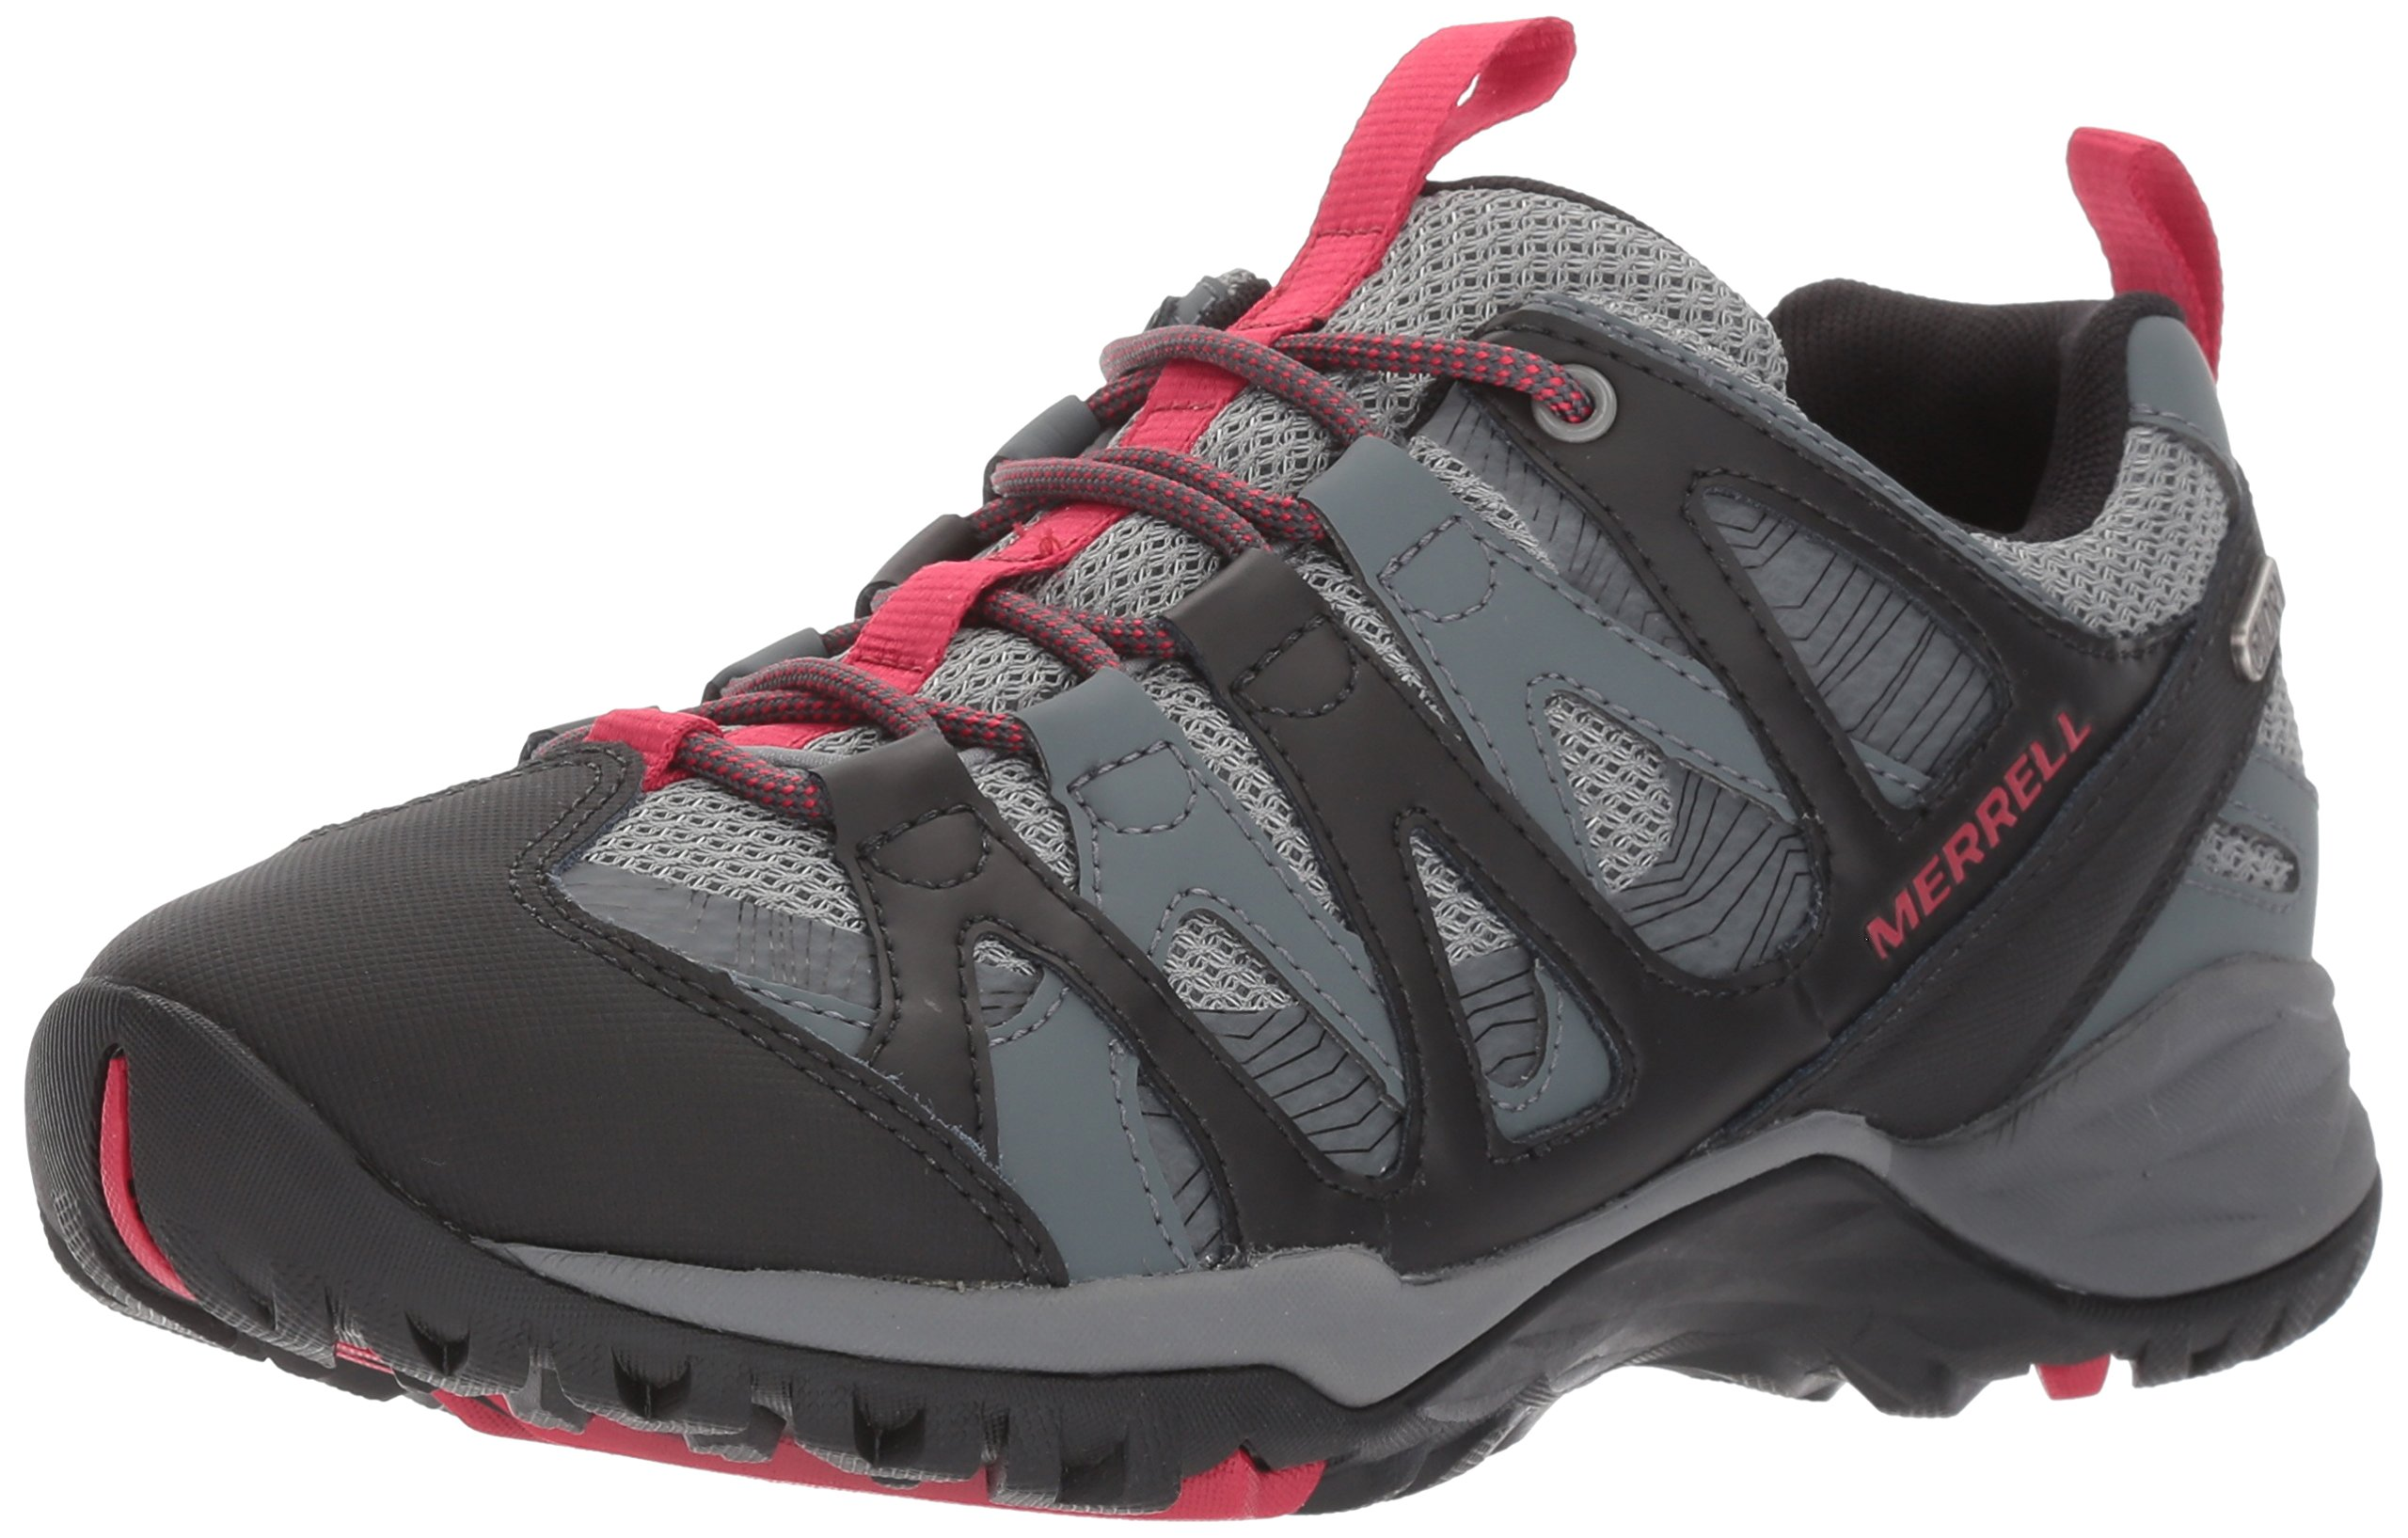 Merrell Women's Siren Hex Waterproof Hiking Shoe, Turbulence, 11 M US